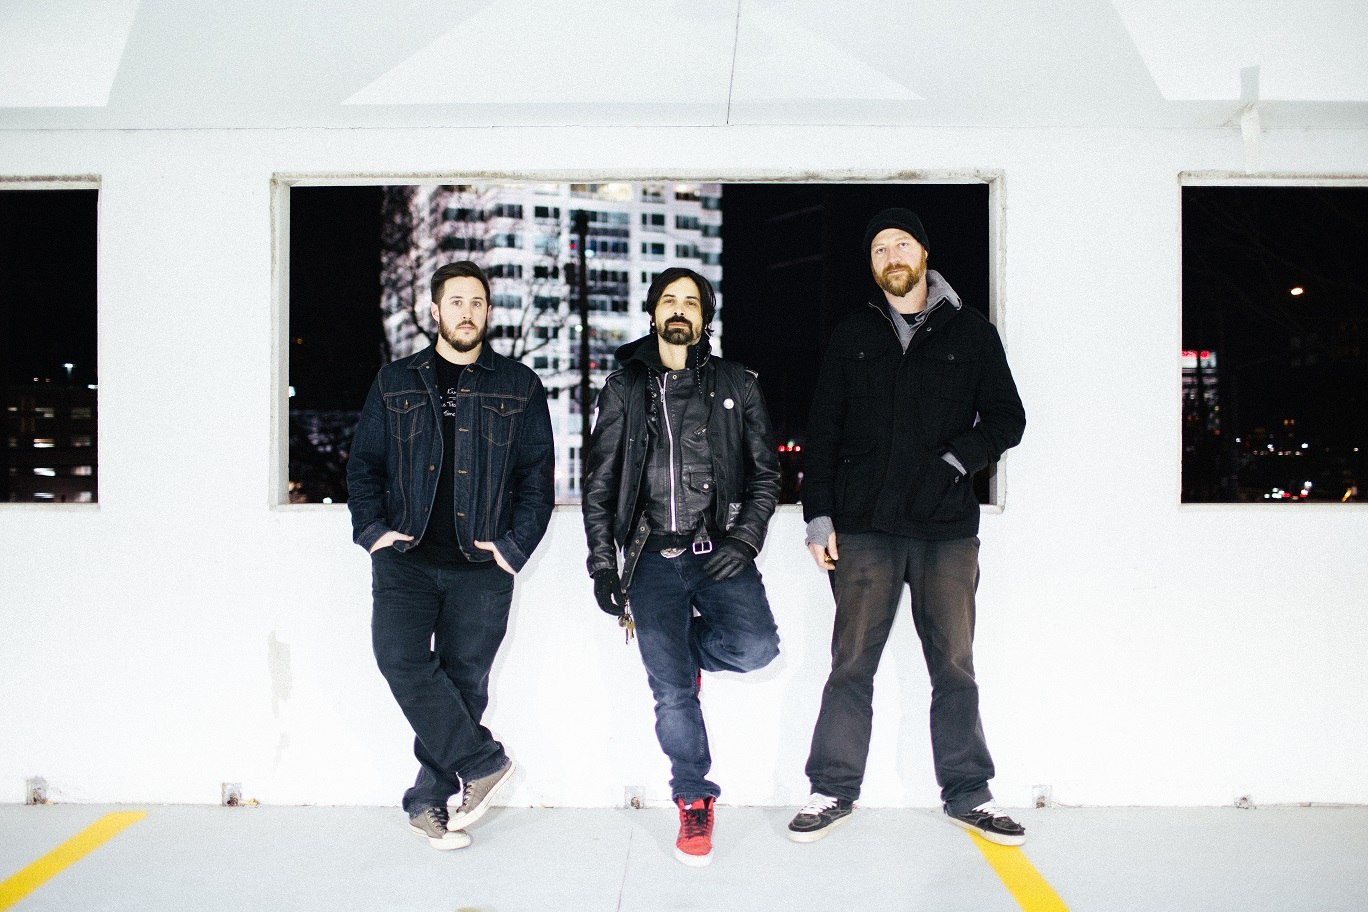 """American rock act  CKY  ( Chad I Ginsburg, Jess Margera  and  Matt Deis ) have signed to Entertainment One Music (US) and Longbranch Records (Europe), and will release a new full-length album this summer.   """"We are thrilled to be working with one of the most progressive record labels in the music business today,""""  states vocalist  Chad I Ginsburg .  """"CKY are looking forward to a long partnership in great music for the entire world with eOne/Long Branch!""""   The new yet to be titled LP will be the first release since the band put out  Carver City  in 2009.   CKY  just announced a slew of UK tour dates right before returning to the US for the 2017  Vans Warped Tour . This is the band's first time returning to the Warped Tour since 2000.  The band plan to debut new songs from their upcoming album, check them out on one of the following dates:  May 8: Brighton, UK, Concorde 2 May 9: Bristol, UK, The Fleece (sold out) May 10: Portsmouth, UK, Wedgewood Rooms May 11: Cambridge, UK, The Junction May 12: Reading, UK, Sub 89 May 13: Birmingham, UK, O2 Academy May 15: Glasgow, Scotland, UK, King Tuts May 16: Manchester, UK, Rebellion (sold out) May 17: Sheffield, UK, O2 Academy 2 May 19: Liverpool, UK, O2 Academy 2 May 20: Colchester, UK, Colchester Arts Centre (sold out) May 21: London, UK, The Underworld (sold out) May 22: London, UK, The Underworld  2017 will be a massive year for  CKY , who have sold north of a million albums over the course of their nearly-20-year career. Fans can expect new music and more tour dates from a band that is re-energised and refreshed, and emerging with a career-defining effort that will prove to be worth the wait.   Chad I Ginsburg , the band's guitarist and singer, steps into the frontman role with charisma, charm, and bravado, confidently delivering a diverse performance as he claims a position that was clearly rightfully his to own.  He's joined in enduring partnership and musical and personal chemistry by fellow CKY cofounder , Jess Marger"""